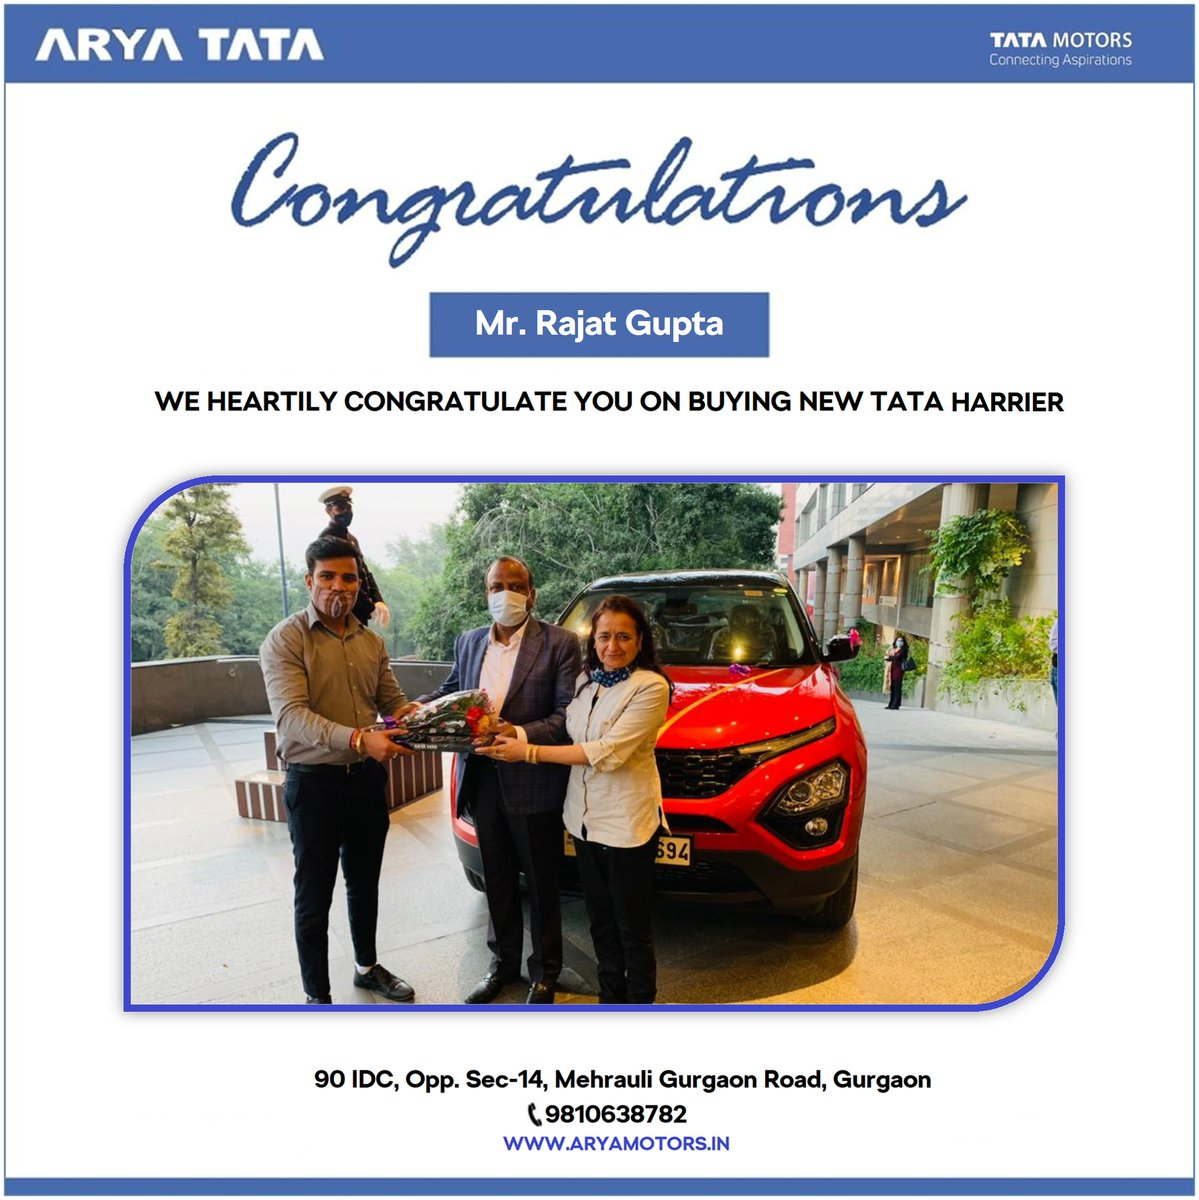 #Congratulations Mr. Rajat Gupta for all new Tata HARRIER. Thanks for being a valued customer of #AryaTata. We are happy to serve you. Thanks again and stay connected with us. . . #HappyCustomer #HappinessDelivered #Celebrations  @TataMotors_Cars  #TataHarrier #Harrier #AboveAll